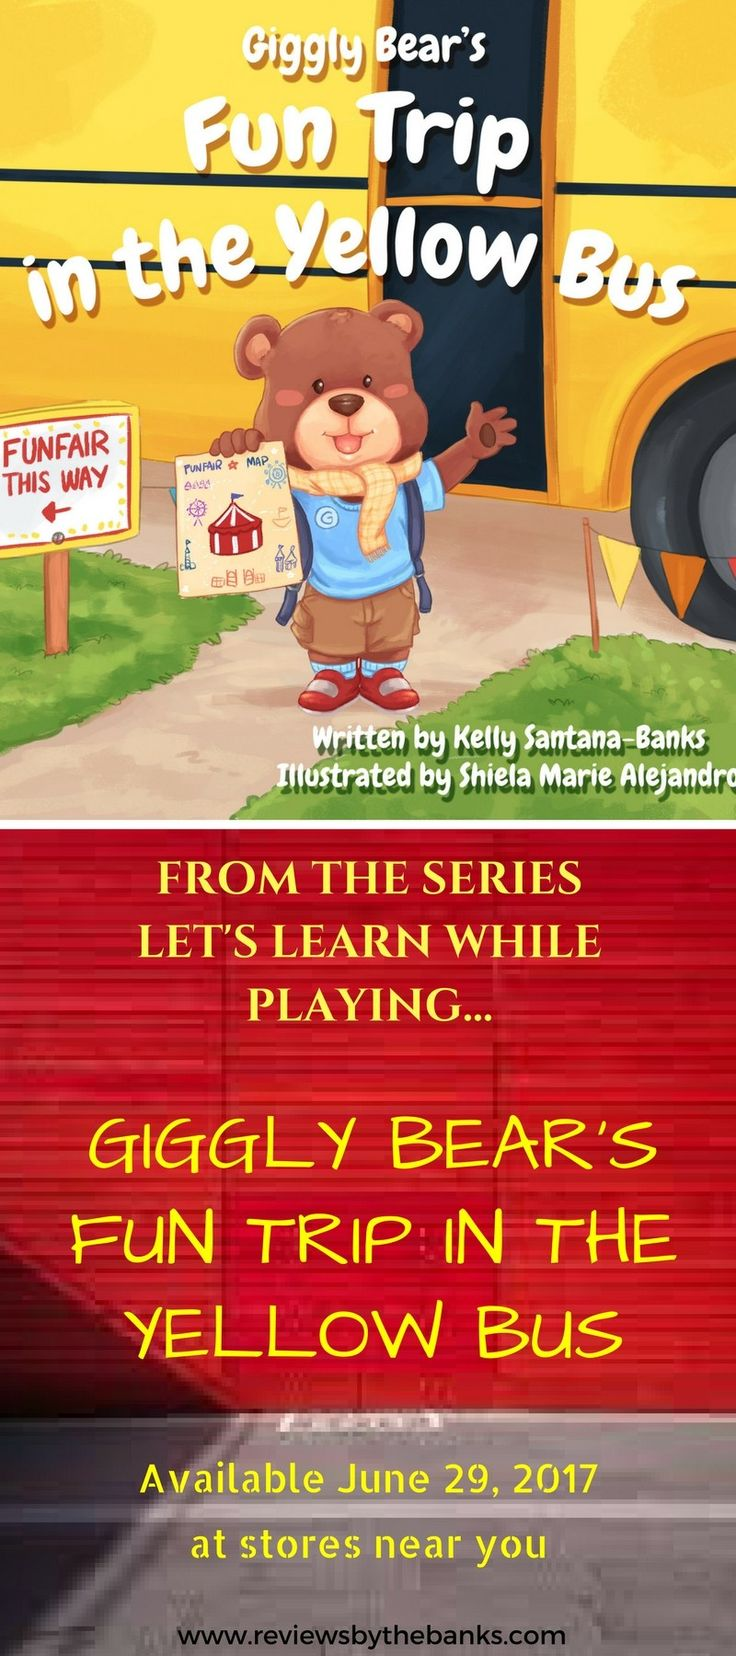 Good parents want to keep children safe. This post is about providing safety tips for parents when their kids travel in the yellow school bus. And Giggly Bear's Fun Trip in the Yellow Bus does the job well.